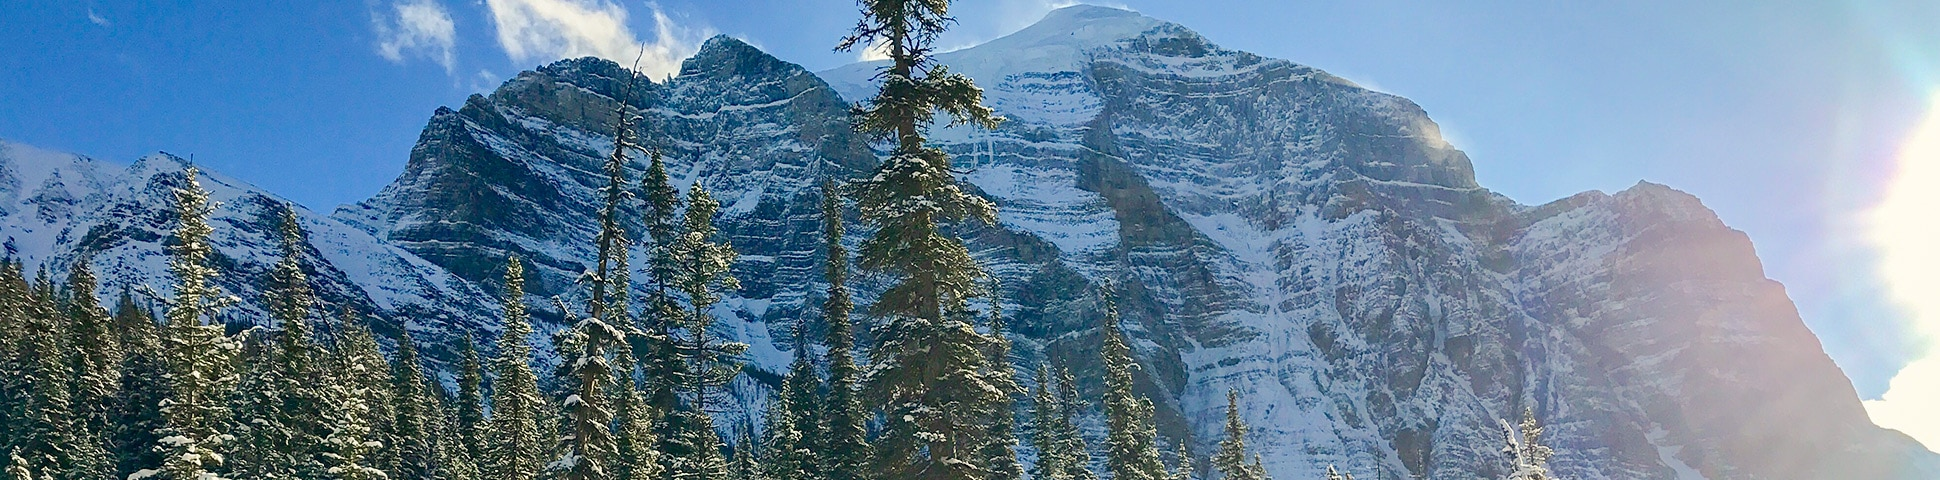 Panoramic view of the Paradise Valley snowshoe trail Banff National Park